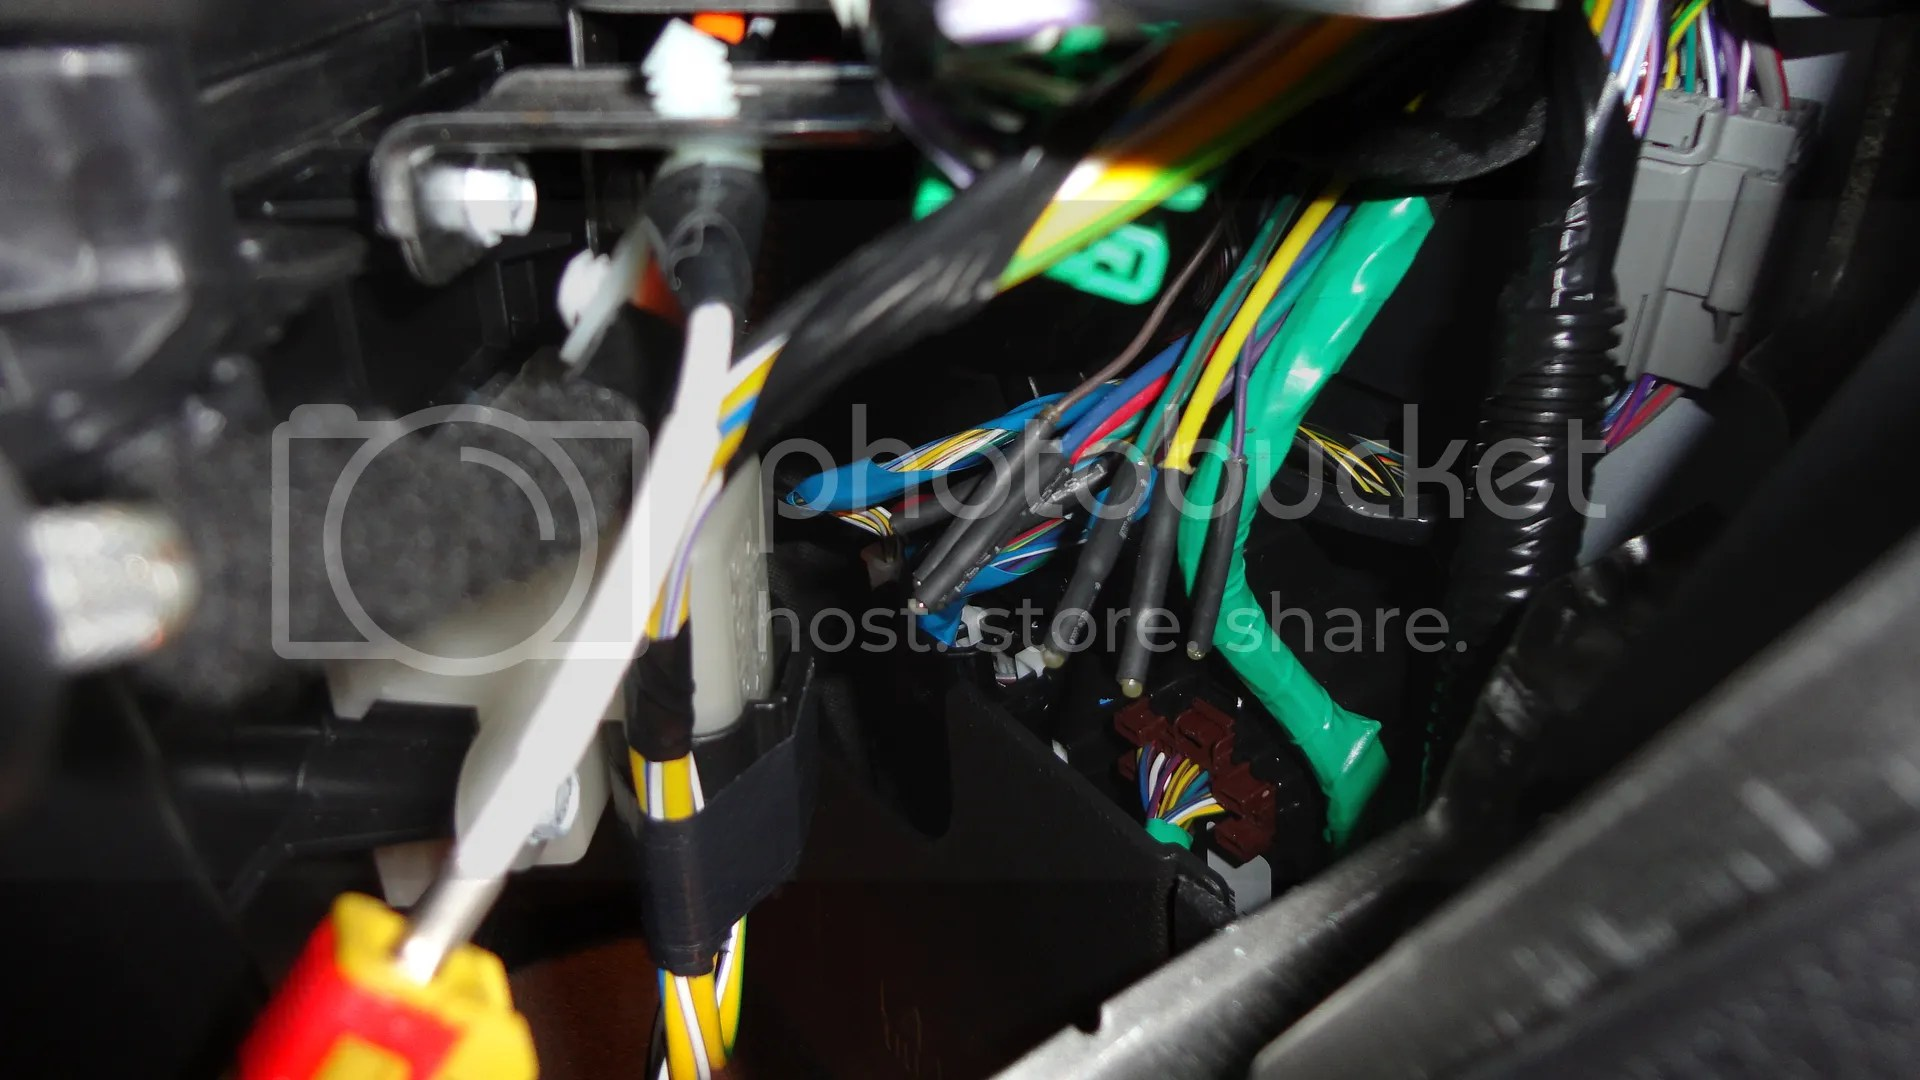 2010 Ford F150 Fuse Box Diagram Under Hood How To Wire Raptor Aux Upfitter Switches Ford Raptor